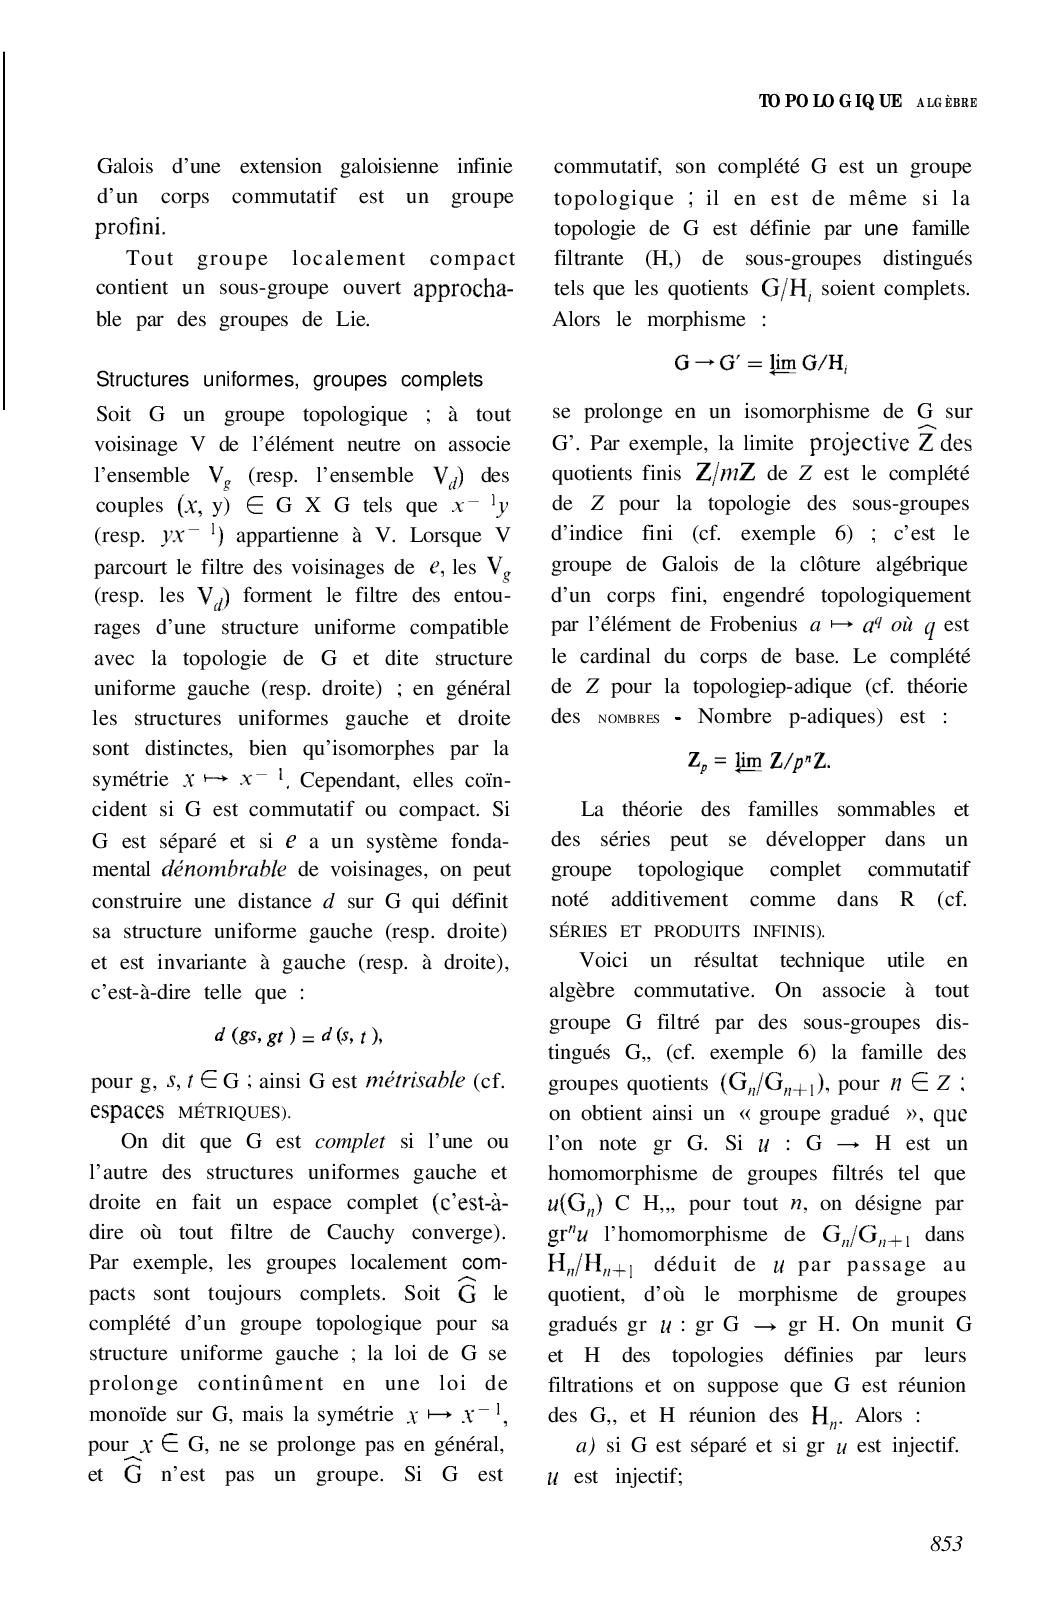 Page 851